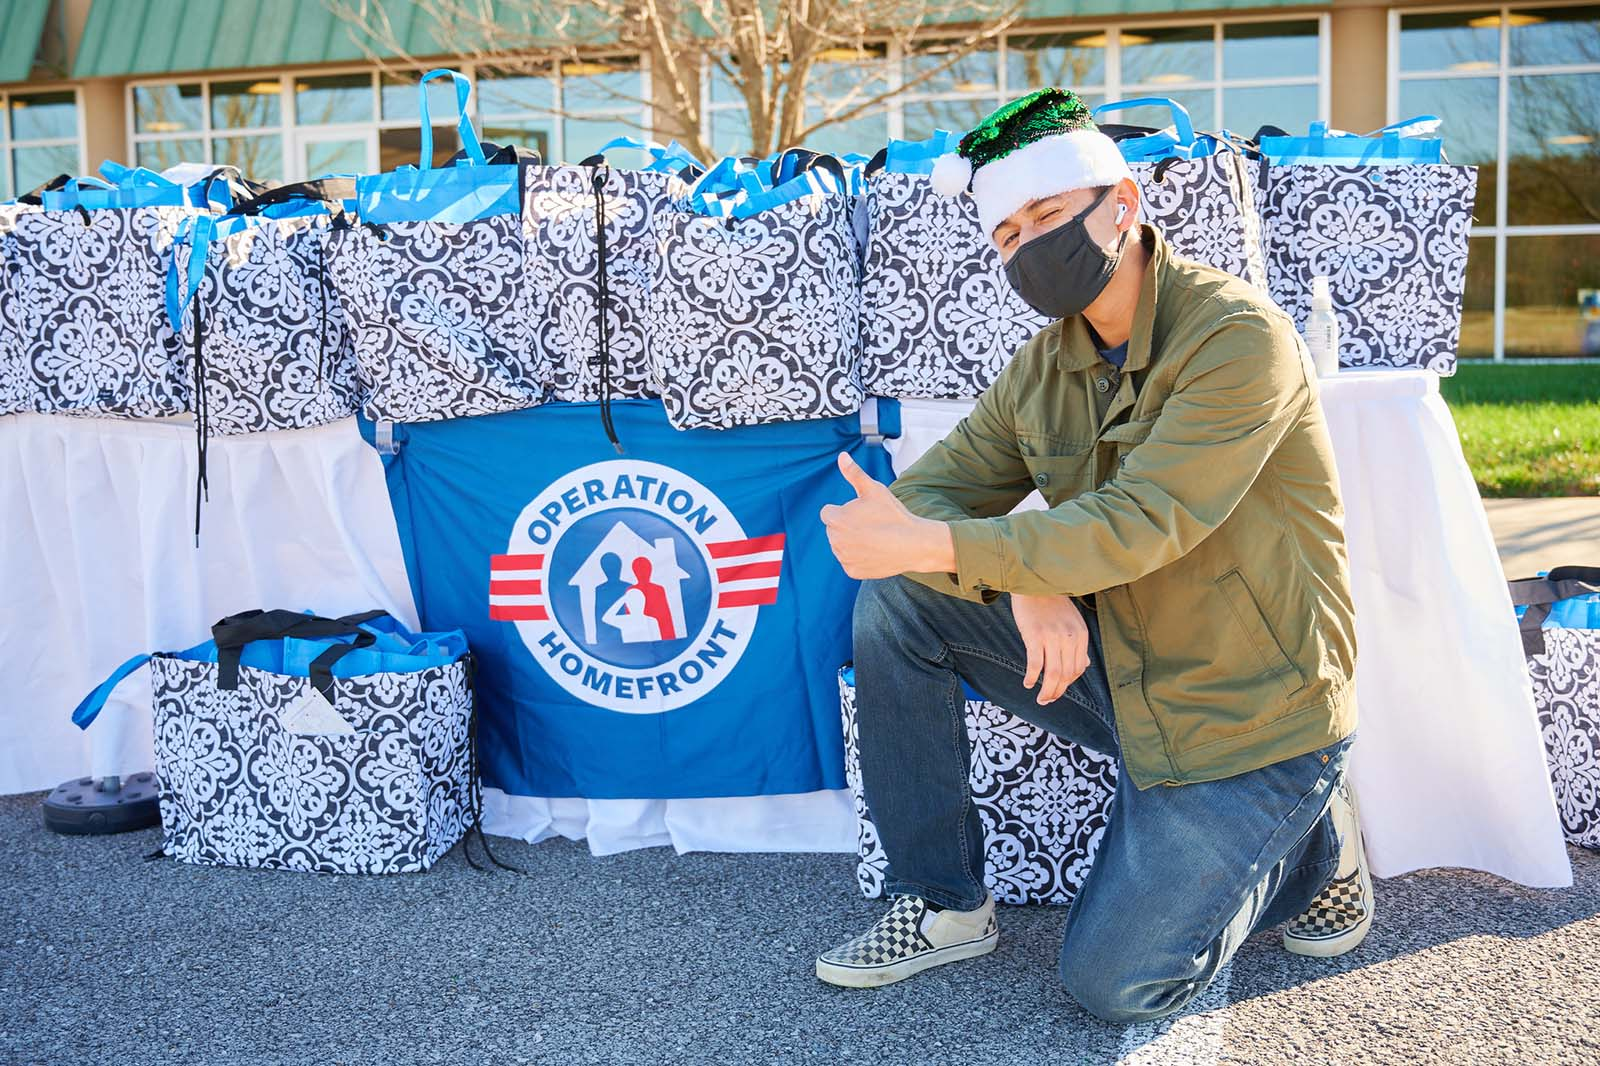 Operation Homefront volunteer kneeling down by a bunch of bags full of food for the Holiday Meals for Military program.